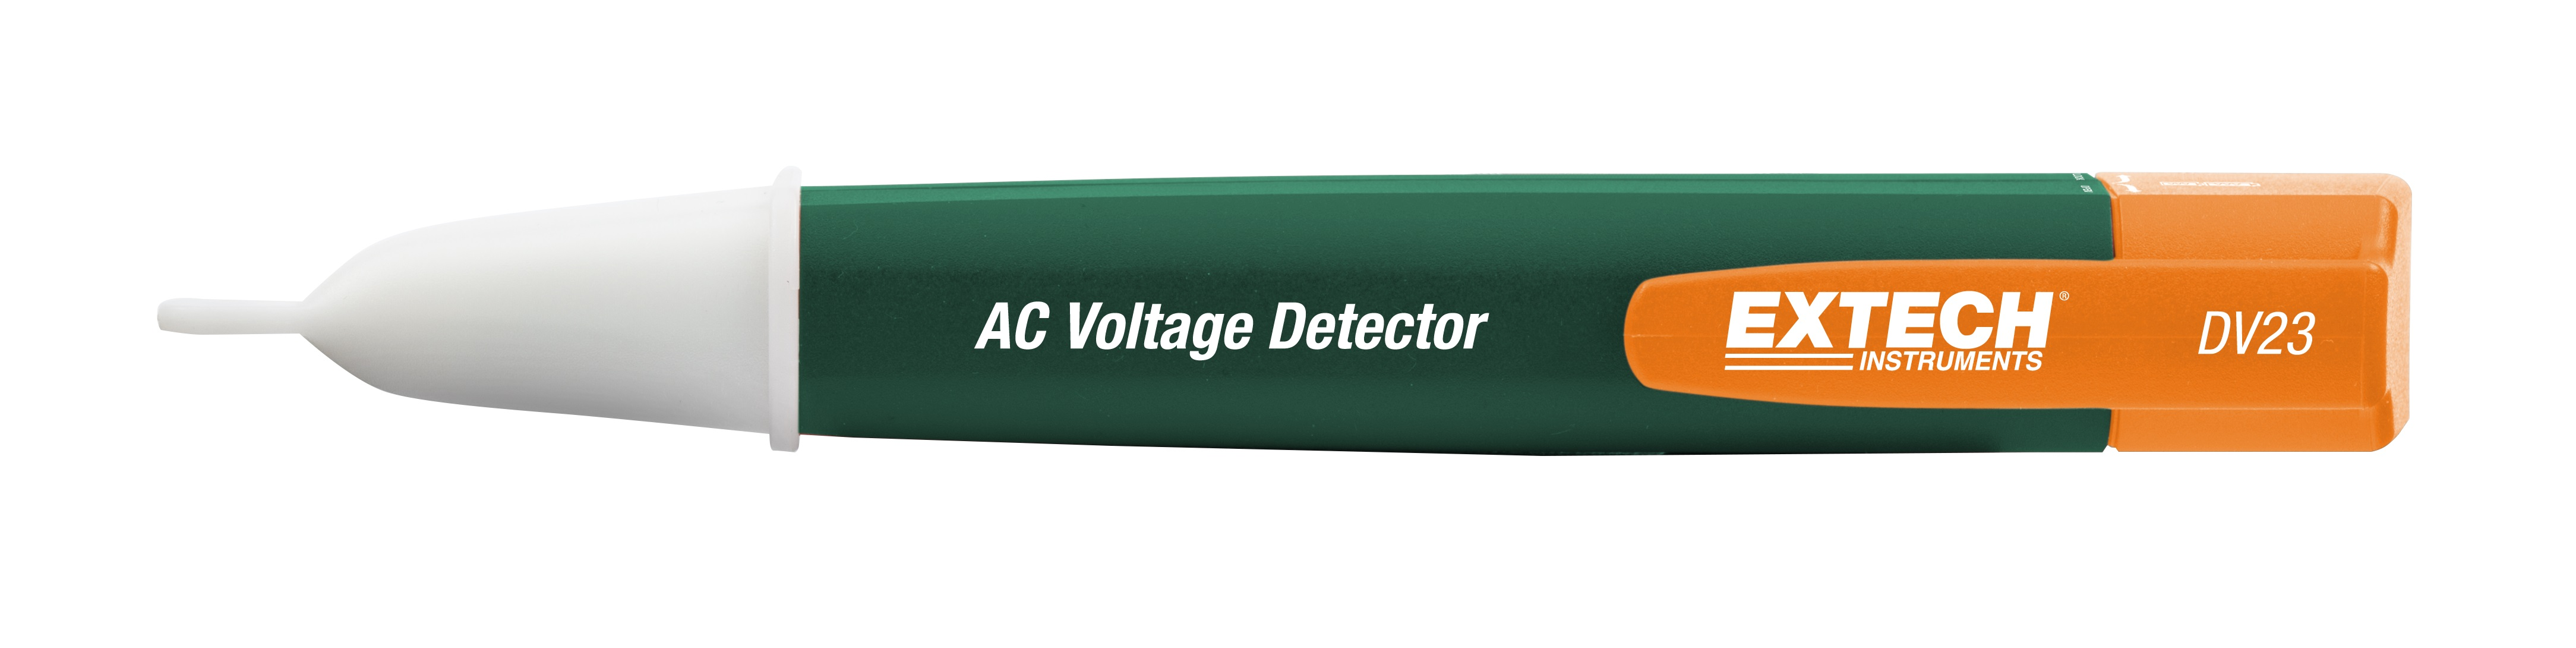 Extech Dv23 Non Contact Voltage Detector 600v Noncontact Ac Electrical Circuit Wire Tester Category Testvoltage Current Detection Manufacturer